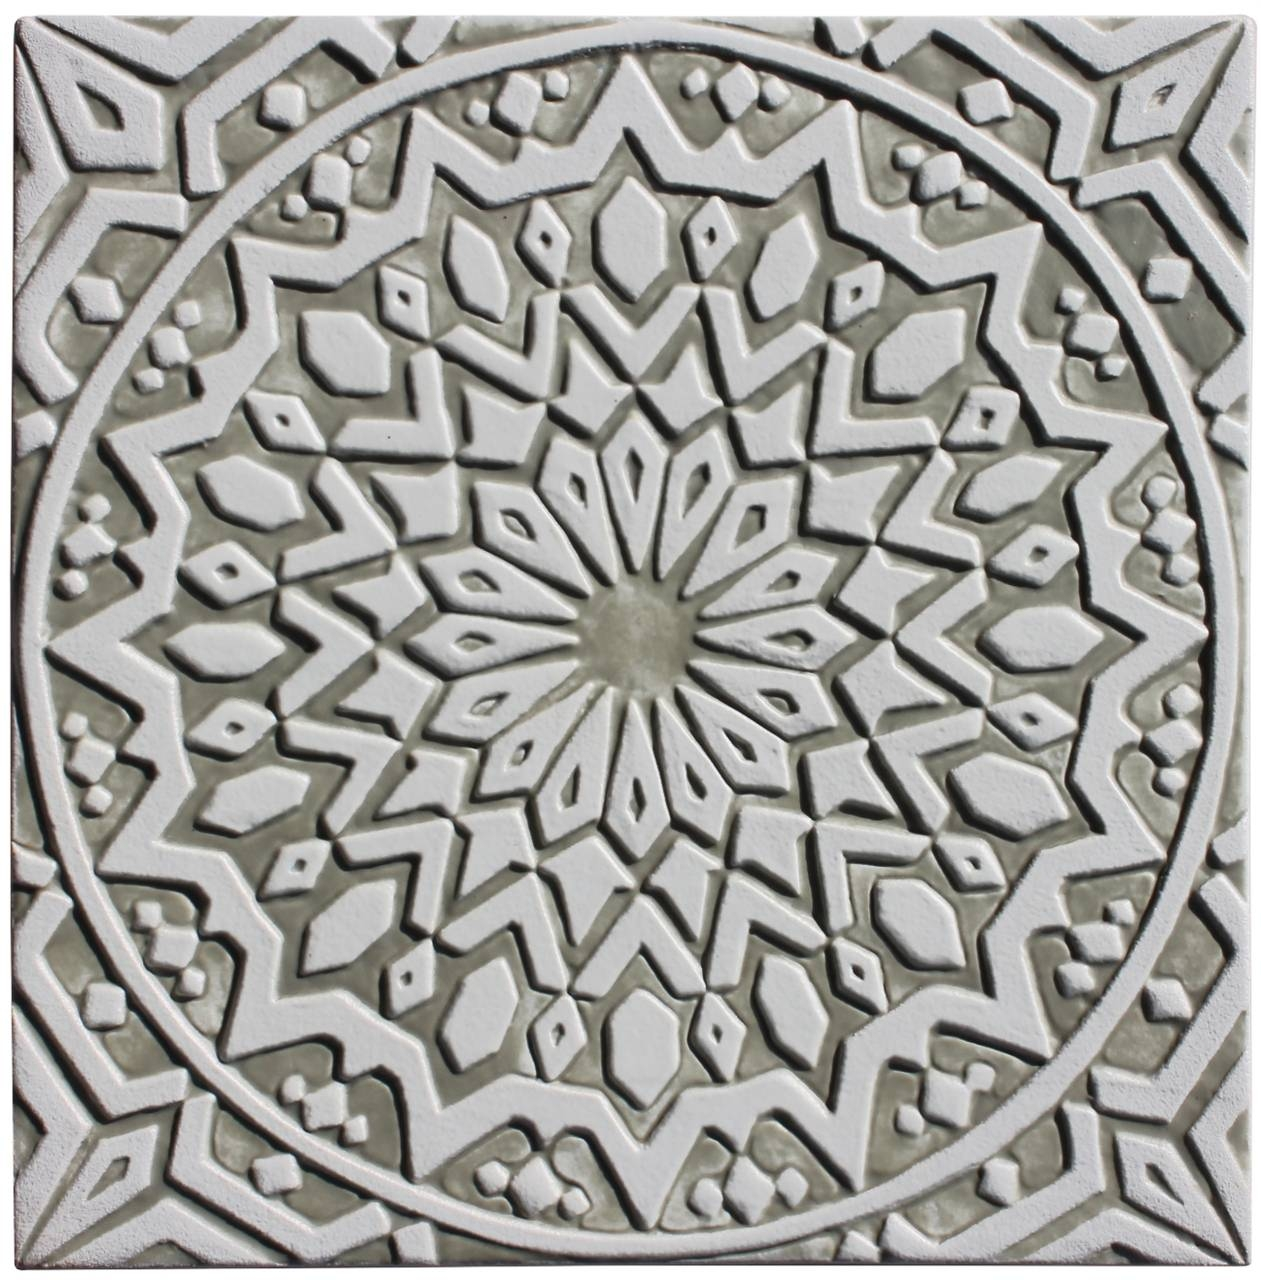 Wall Art Designs: Moroccan Wall Art Maroccan Ceramic Wall Art Home Throughout Current Moroccan Metal Wall Art (View 14 of 15)